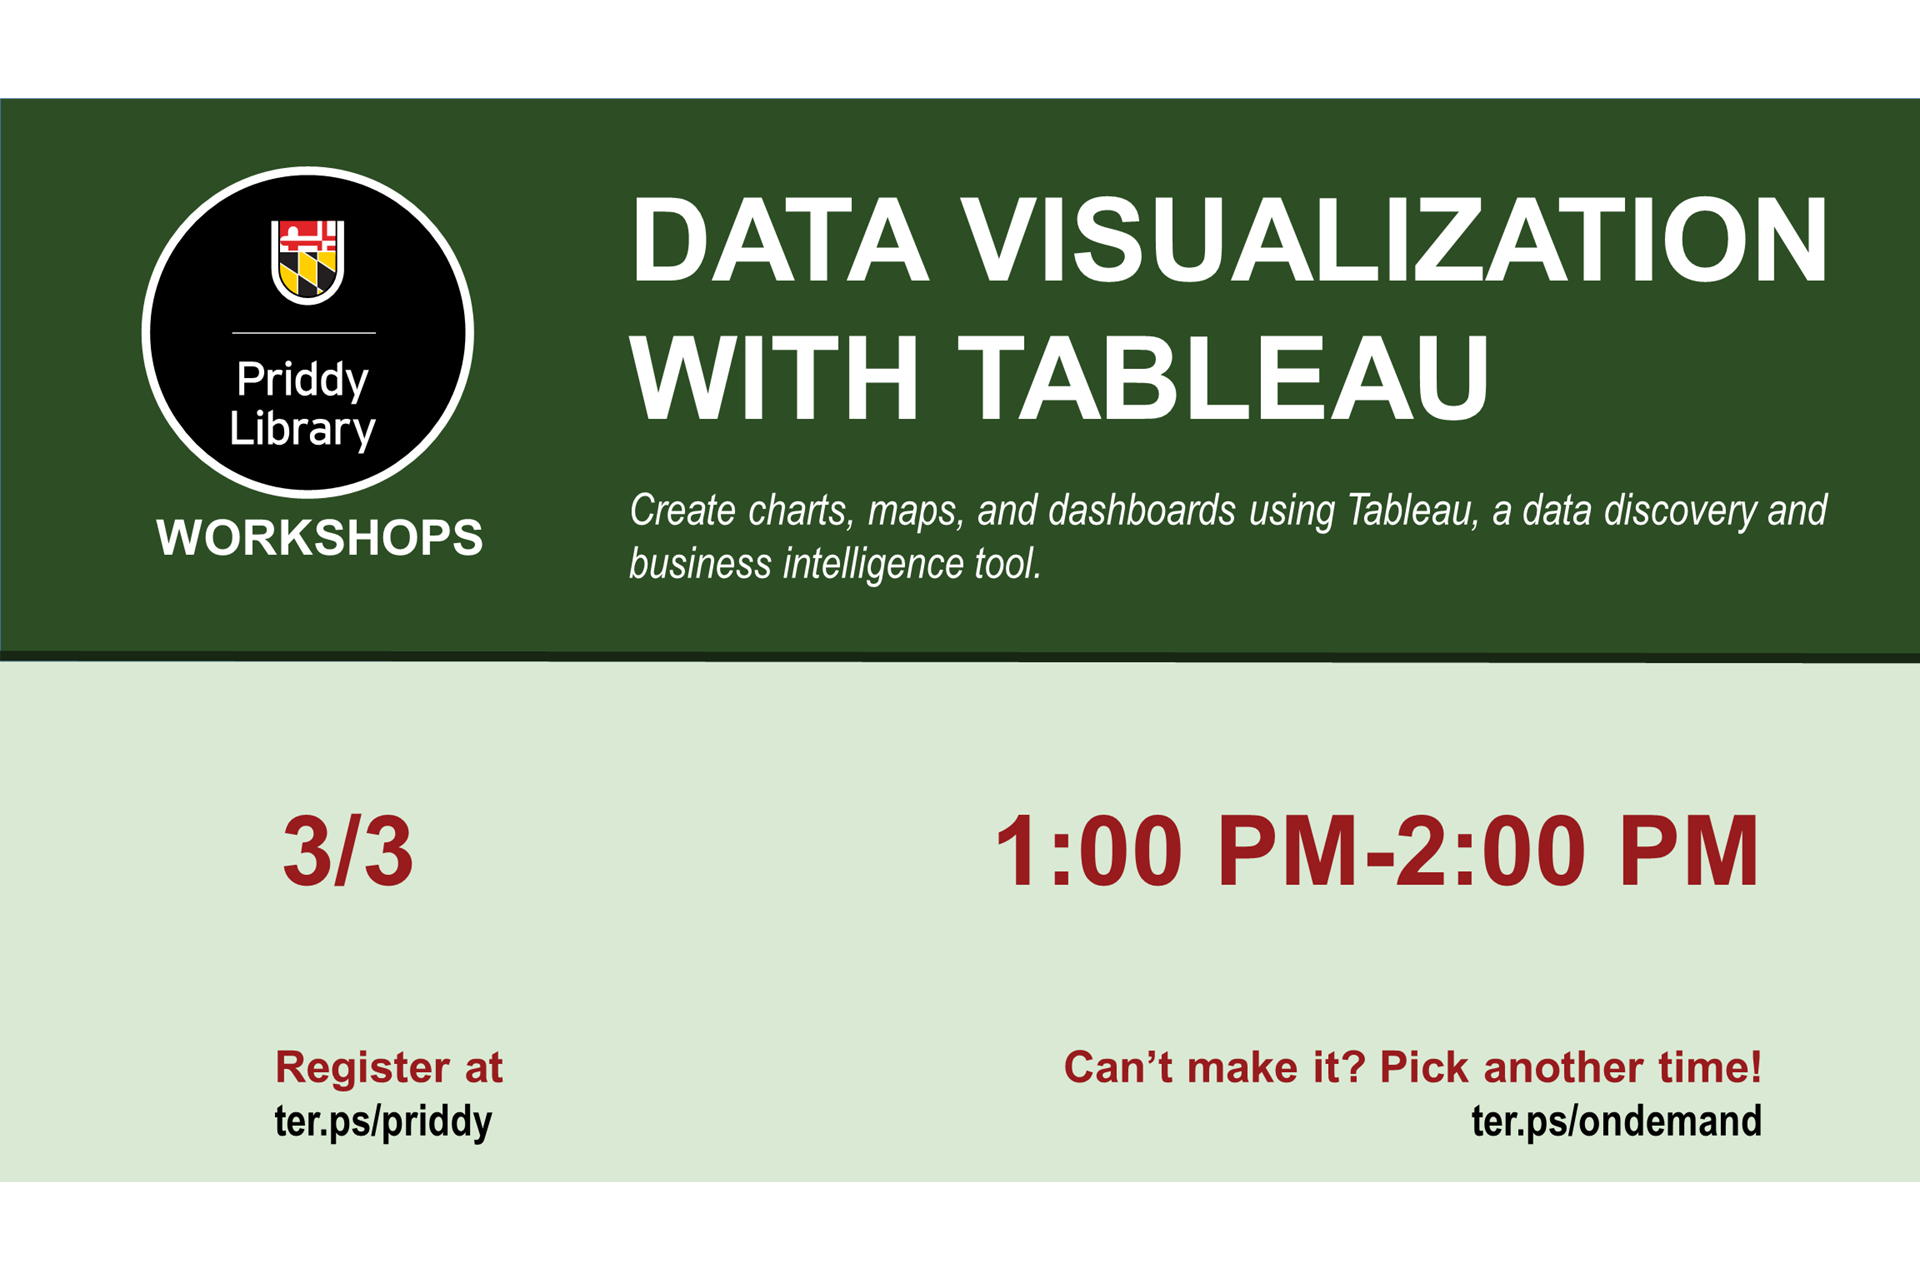 Data visualization with Tableau workshop flyer